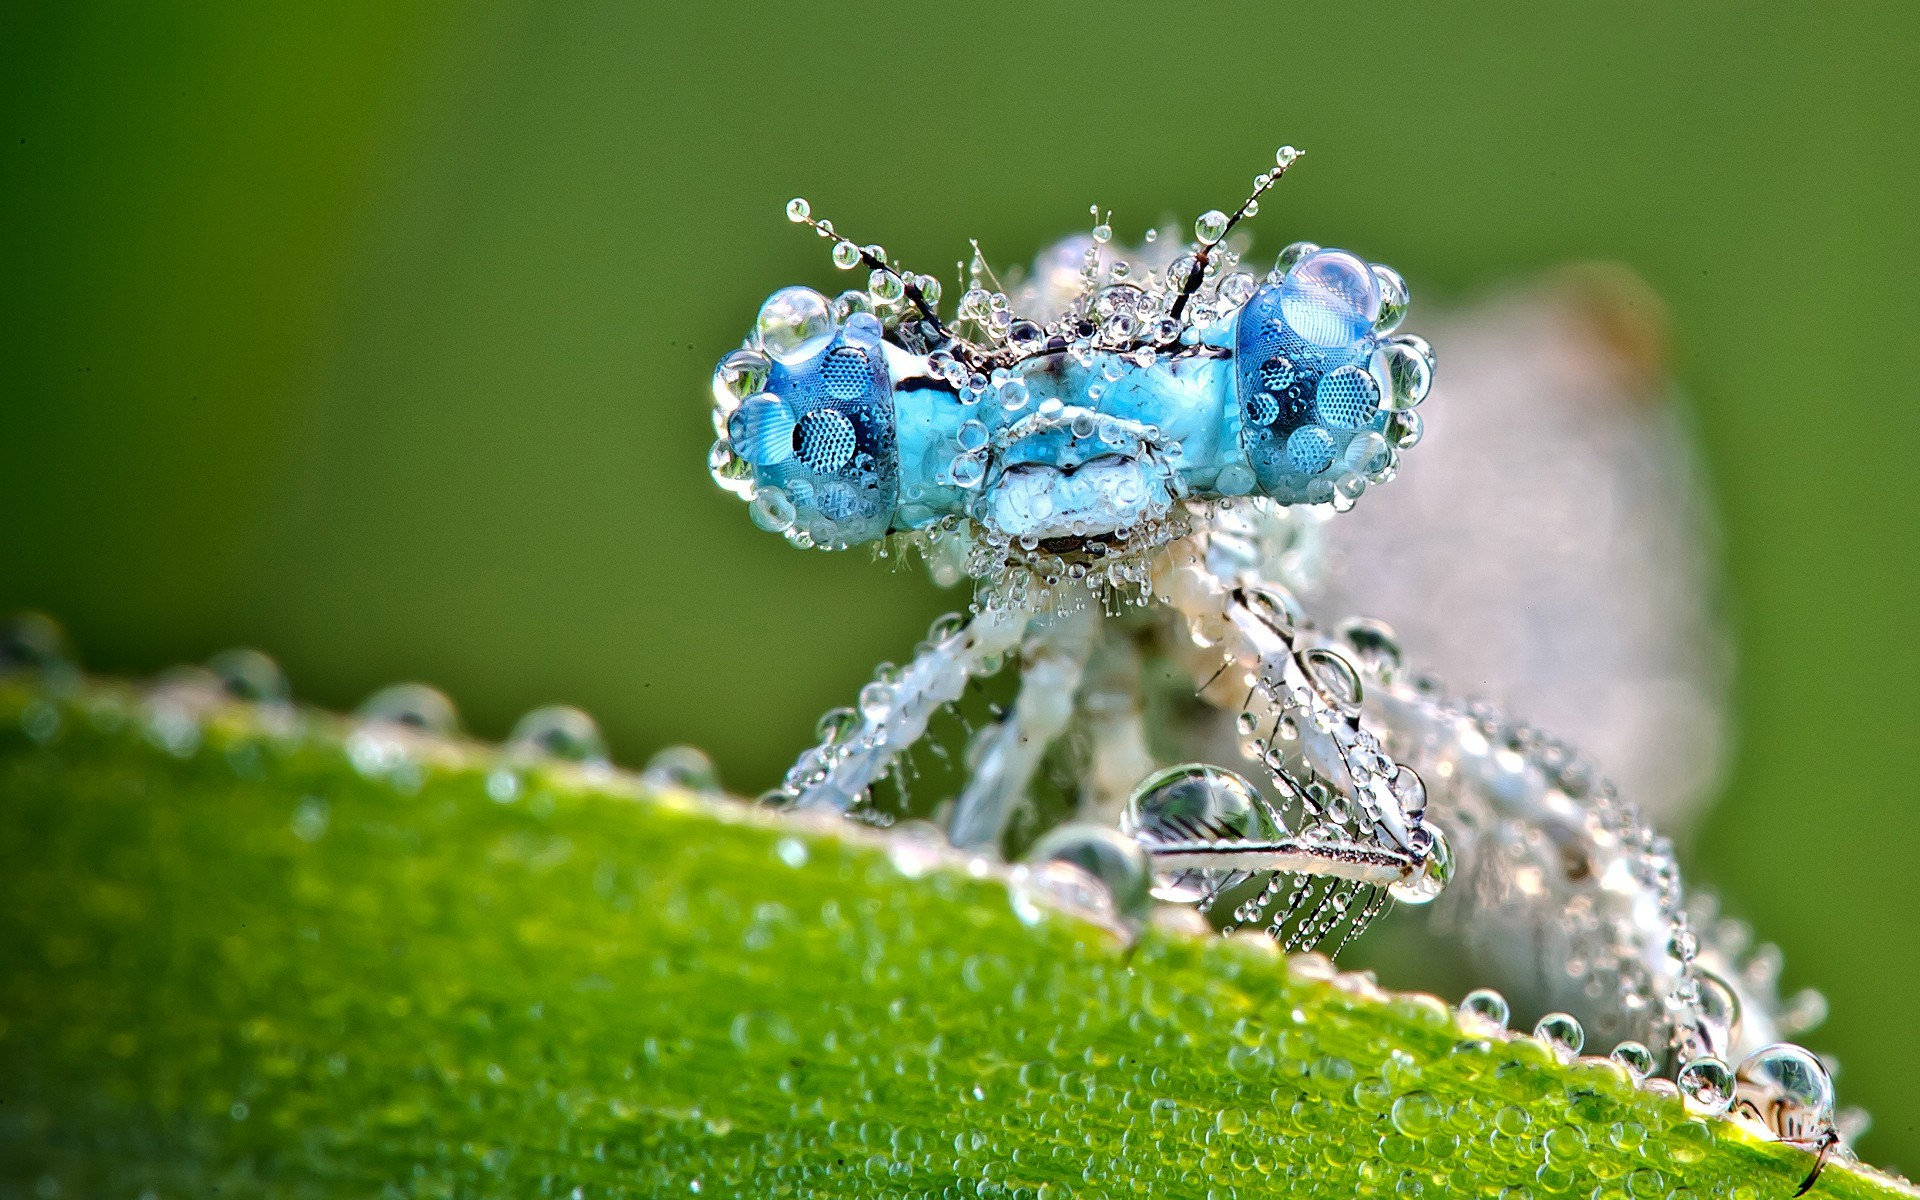 Dragonfly Insect Dew Drops Leaf Close Up HD Wallpaper